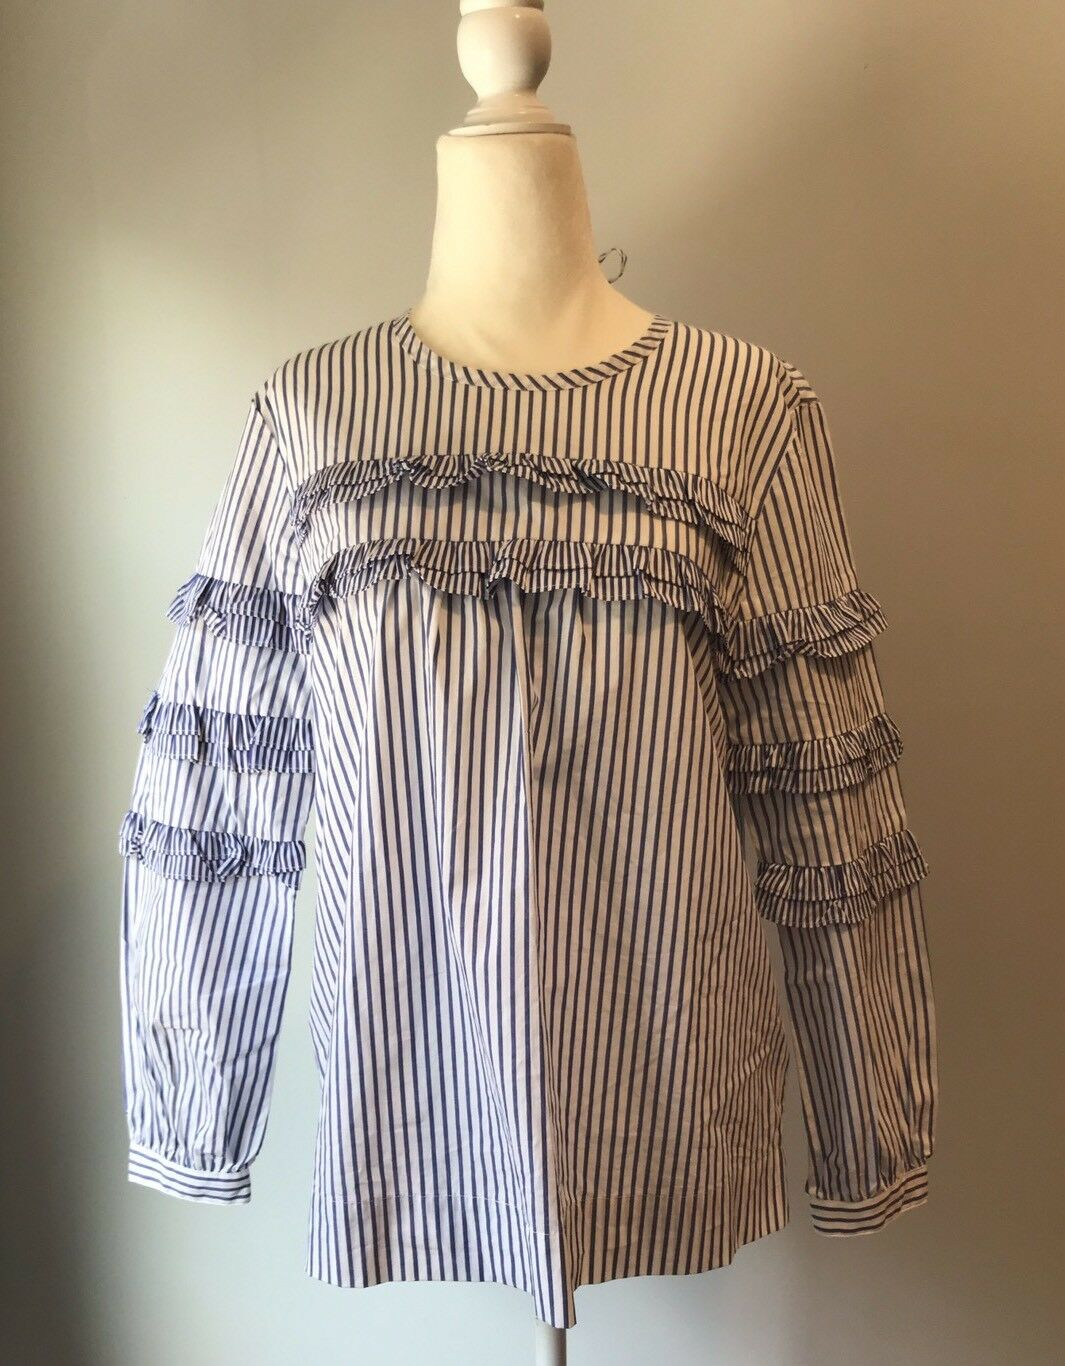 NEW J. CREW TIErot TOP IN MIXED STRIPES SZ 4  G7012